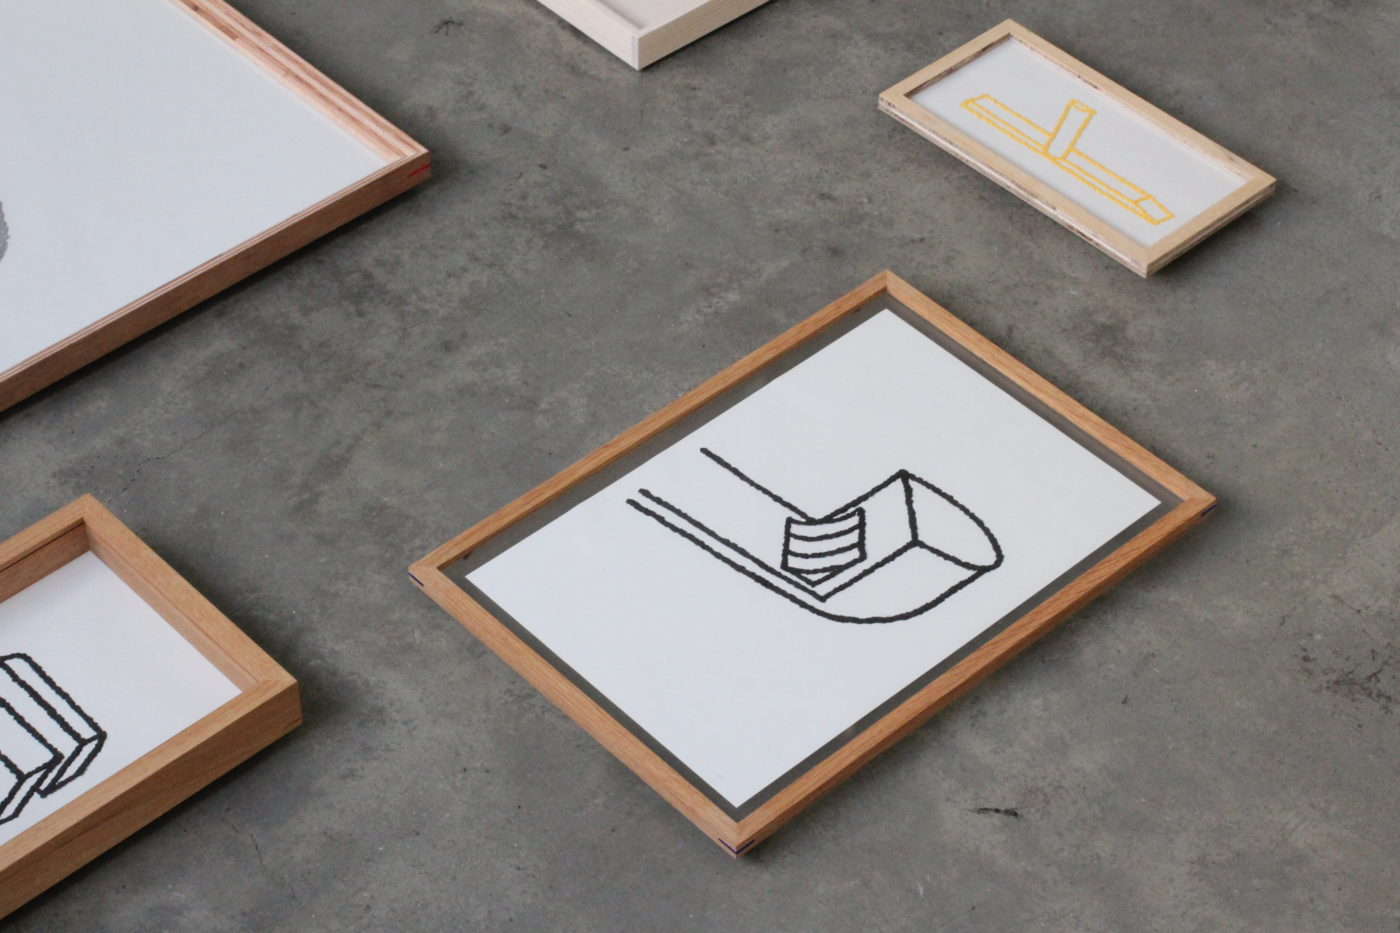 simple wood productによる額の展示販売会「Frame and Drawing」。吉行良平によるドローイングも